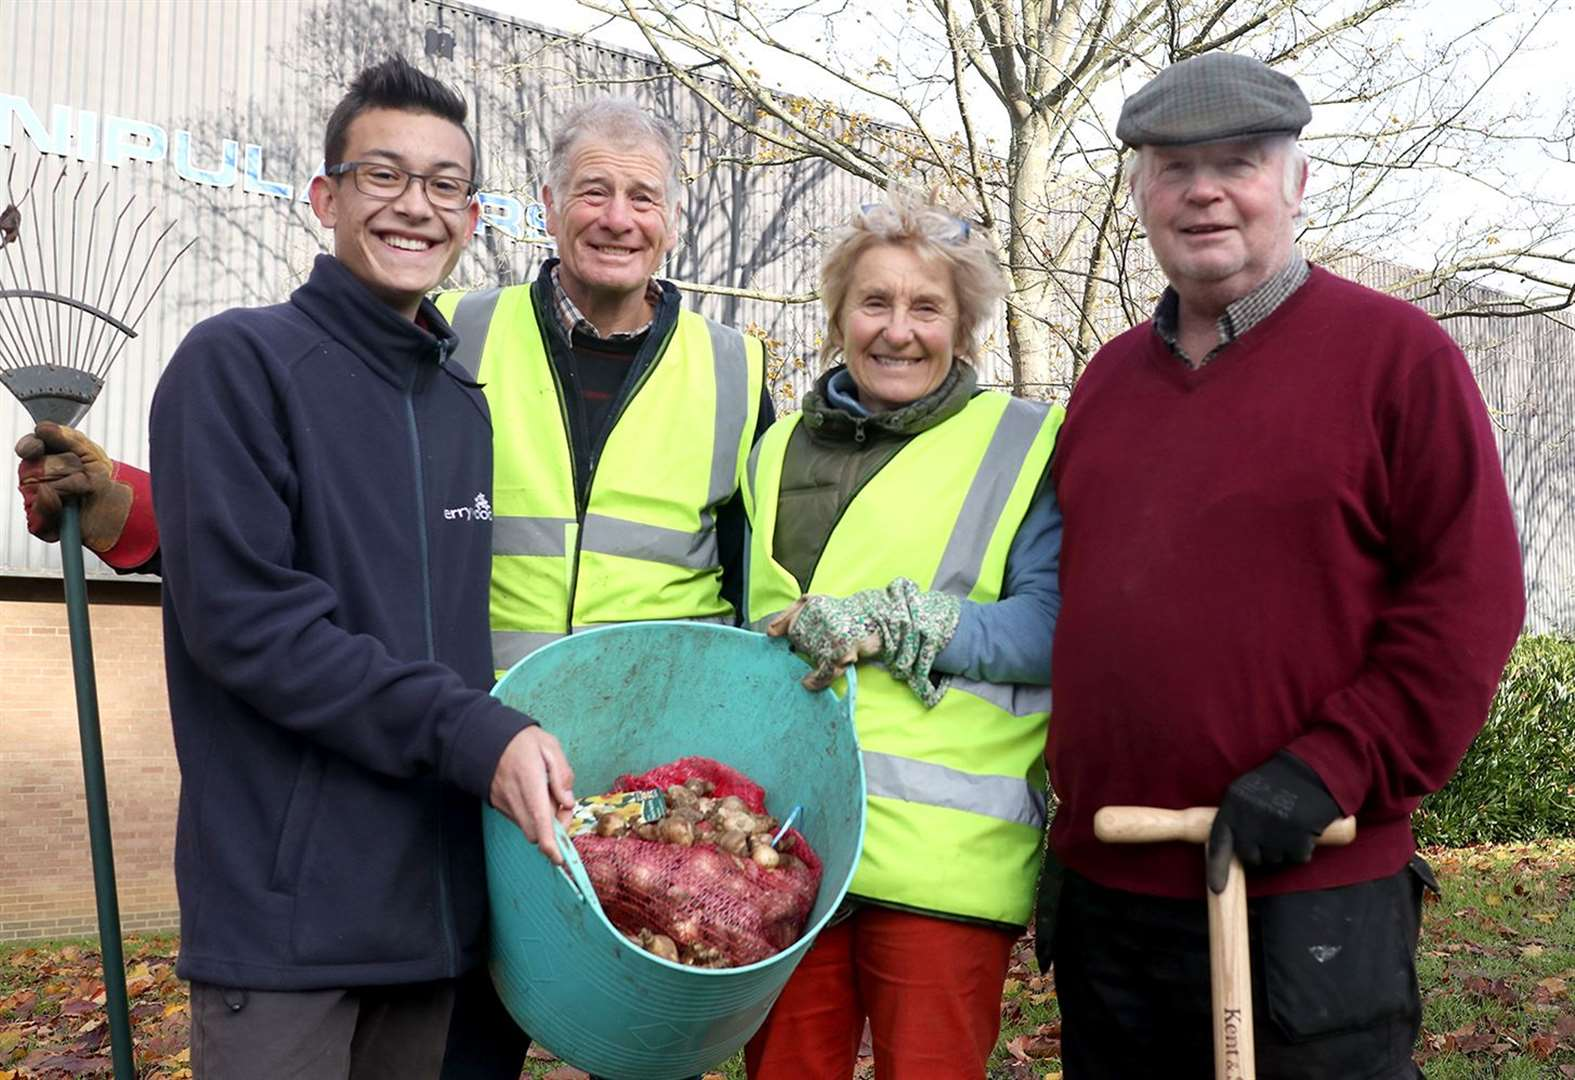 Perrywood garden centre sponsors Sudbury in Bloom project to rejuvenate roadside